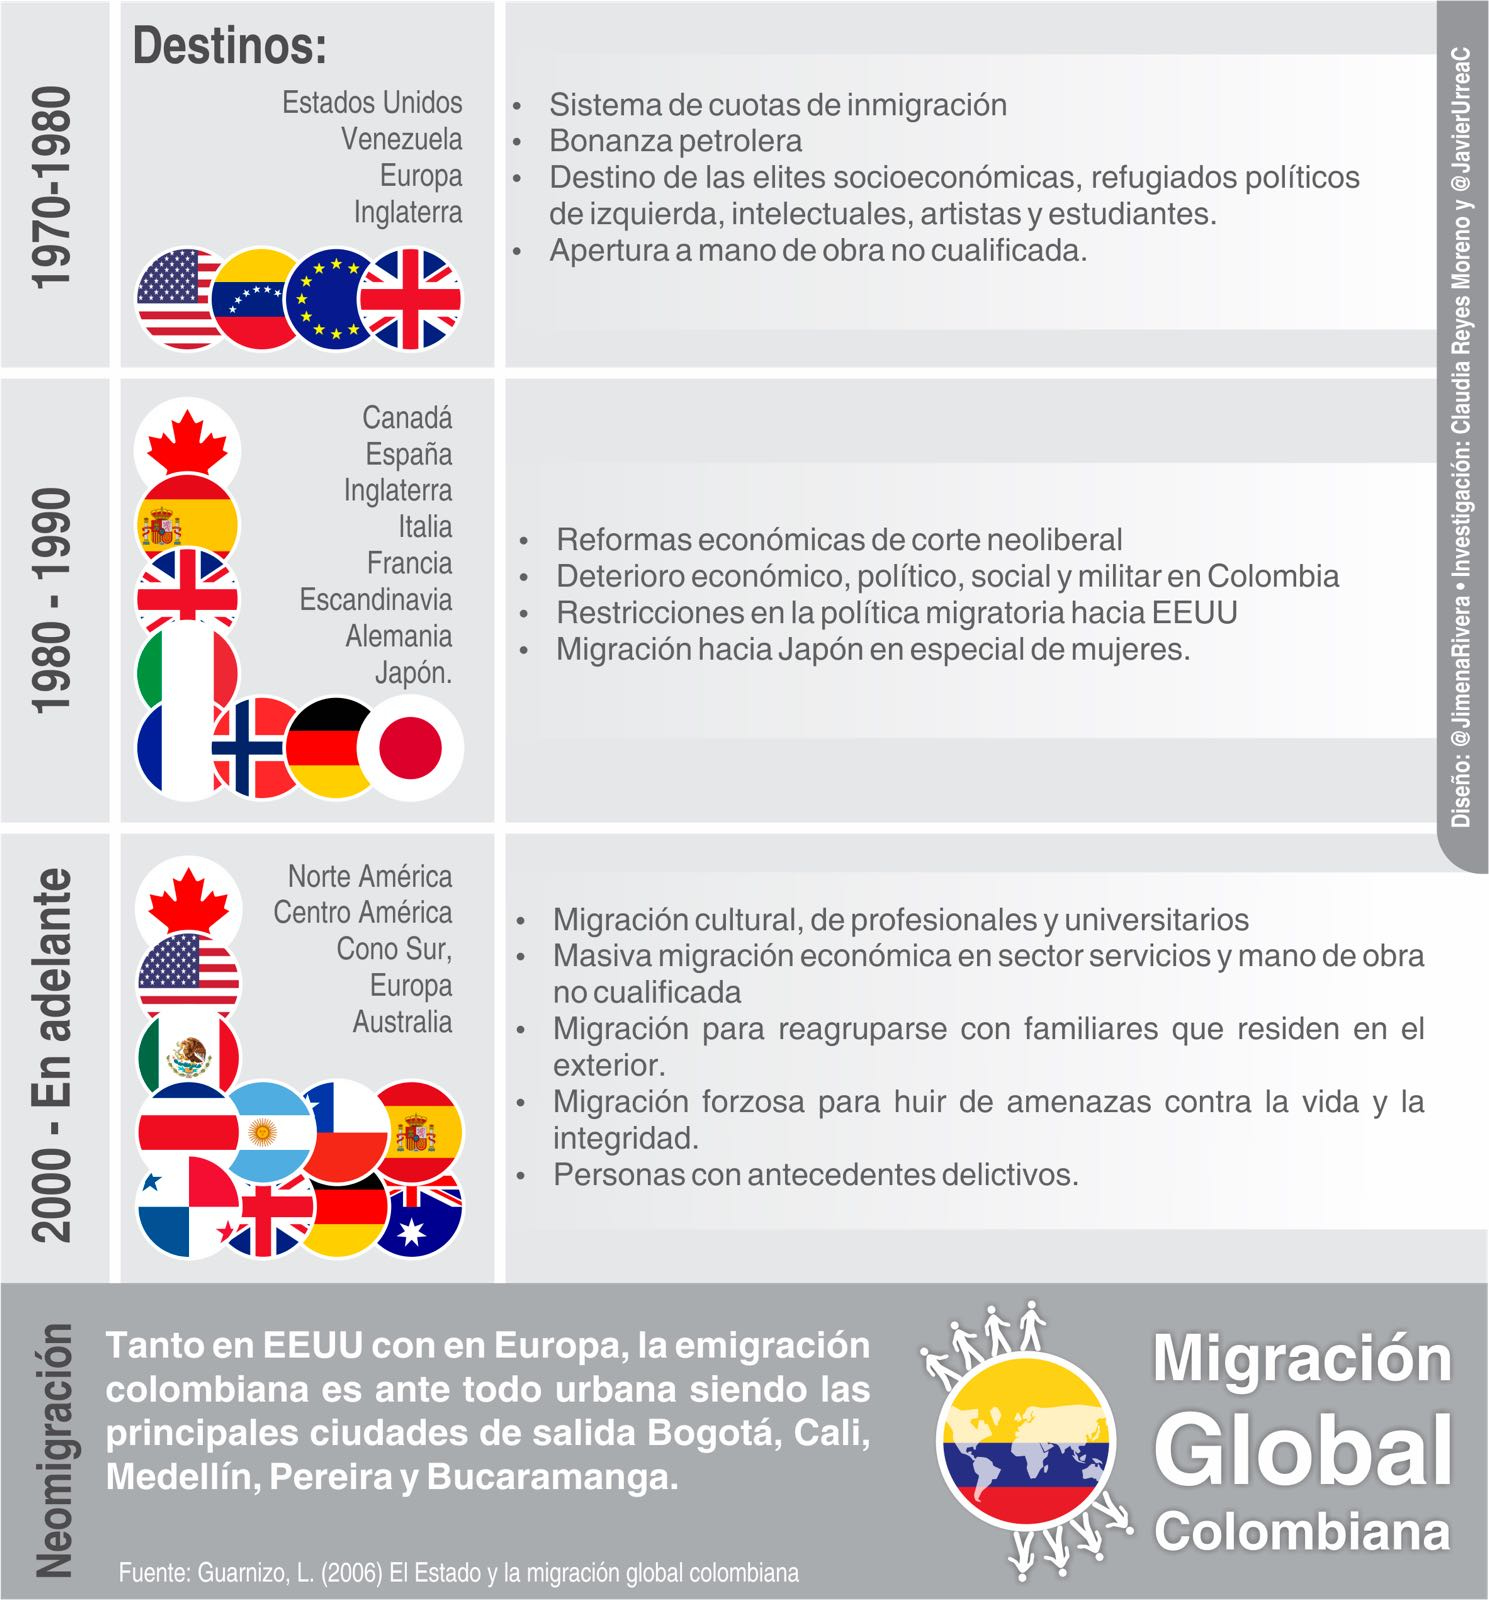 Migración Global Colombiana